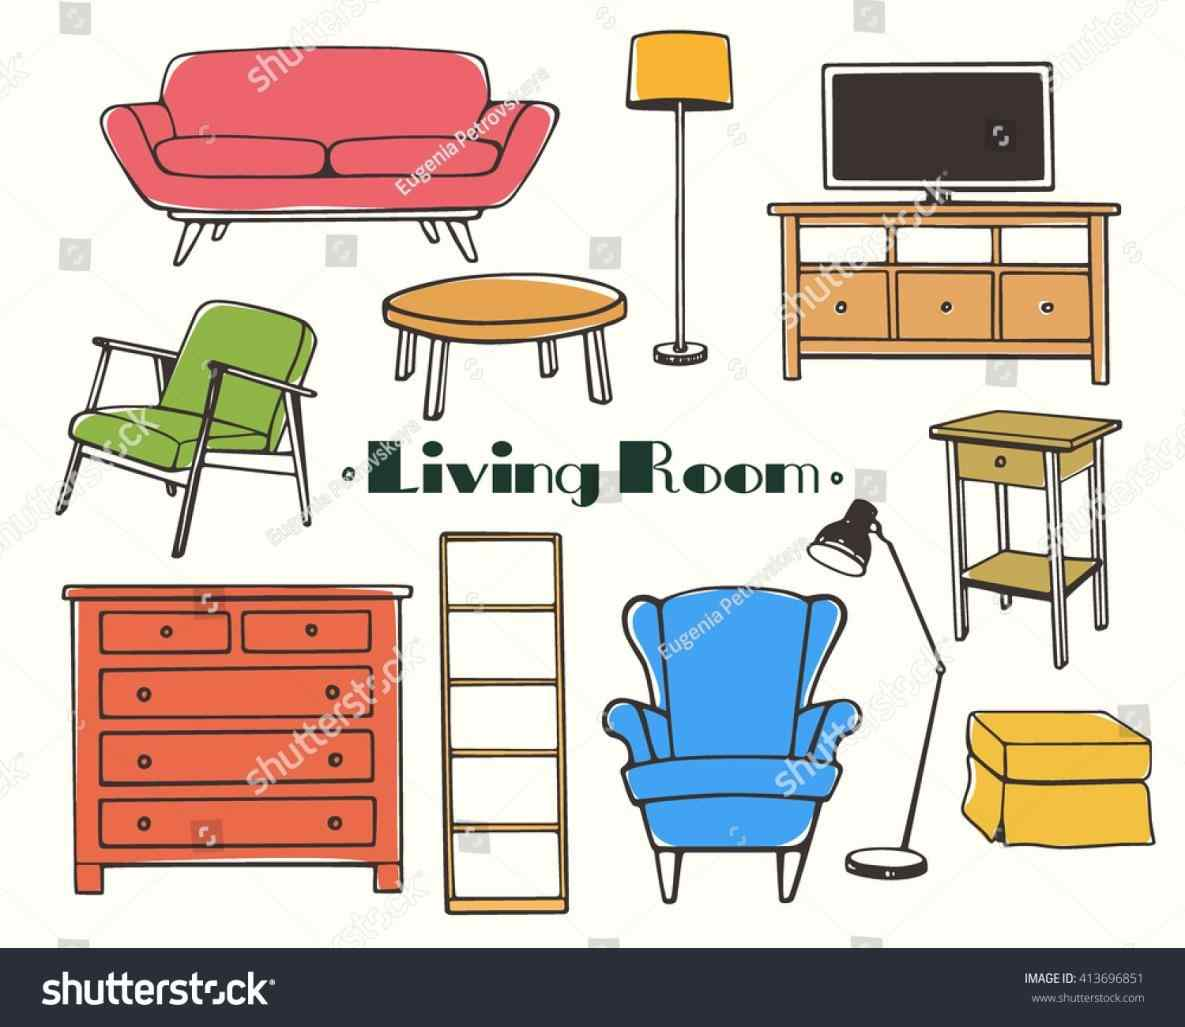 Living room arch dsgn. Furniture clipart image free download